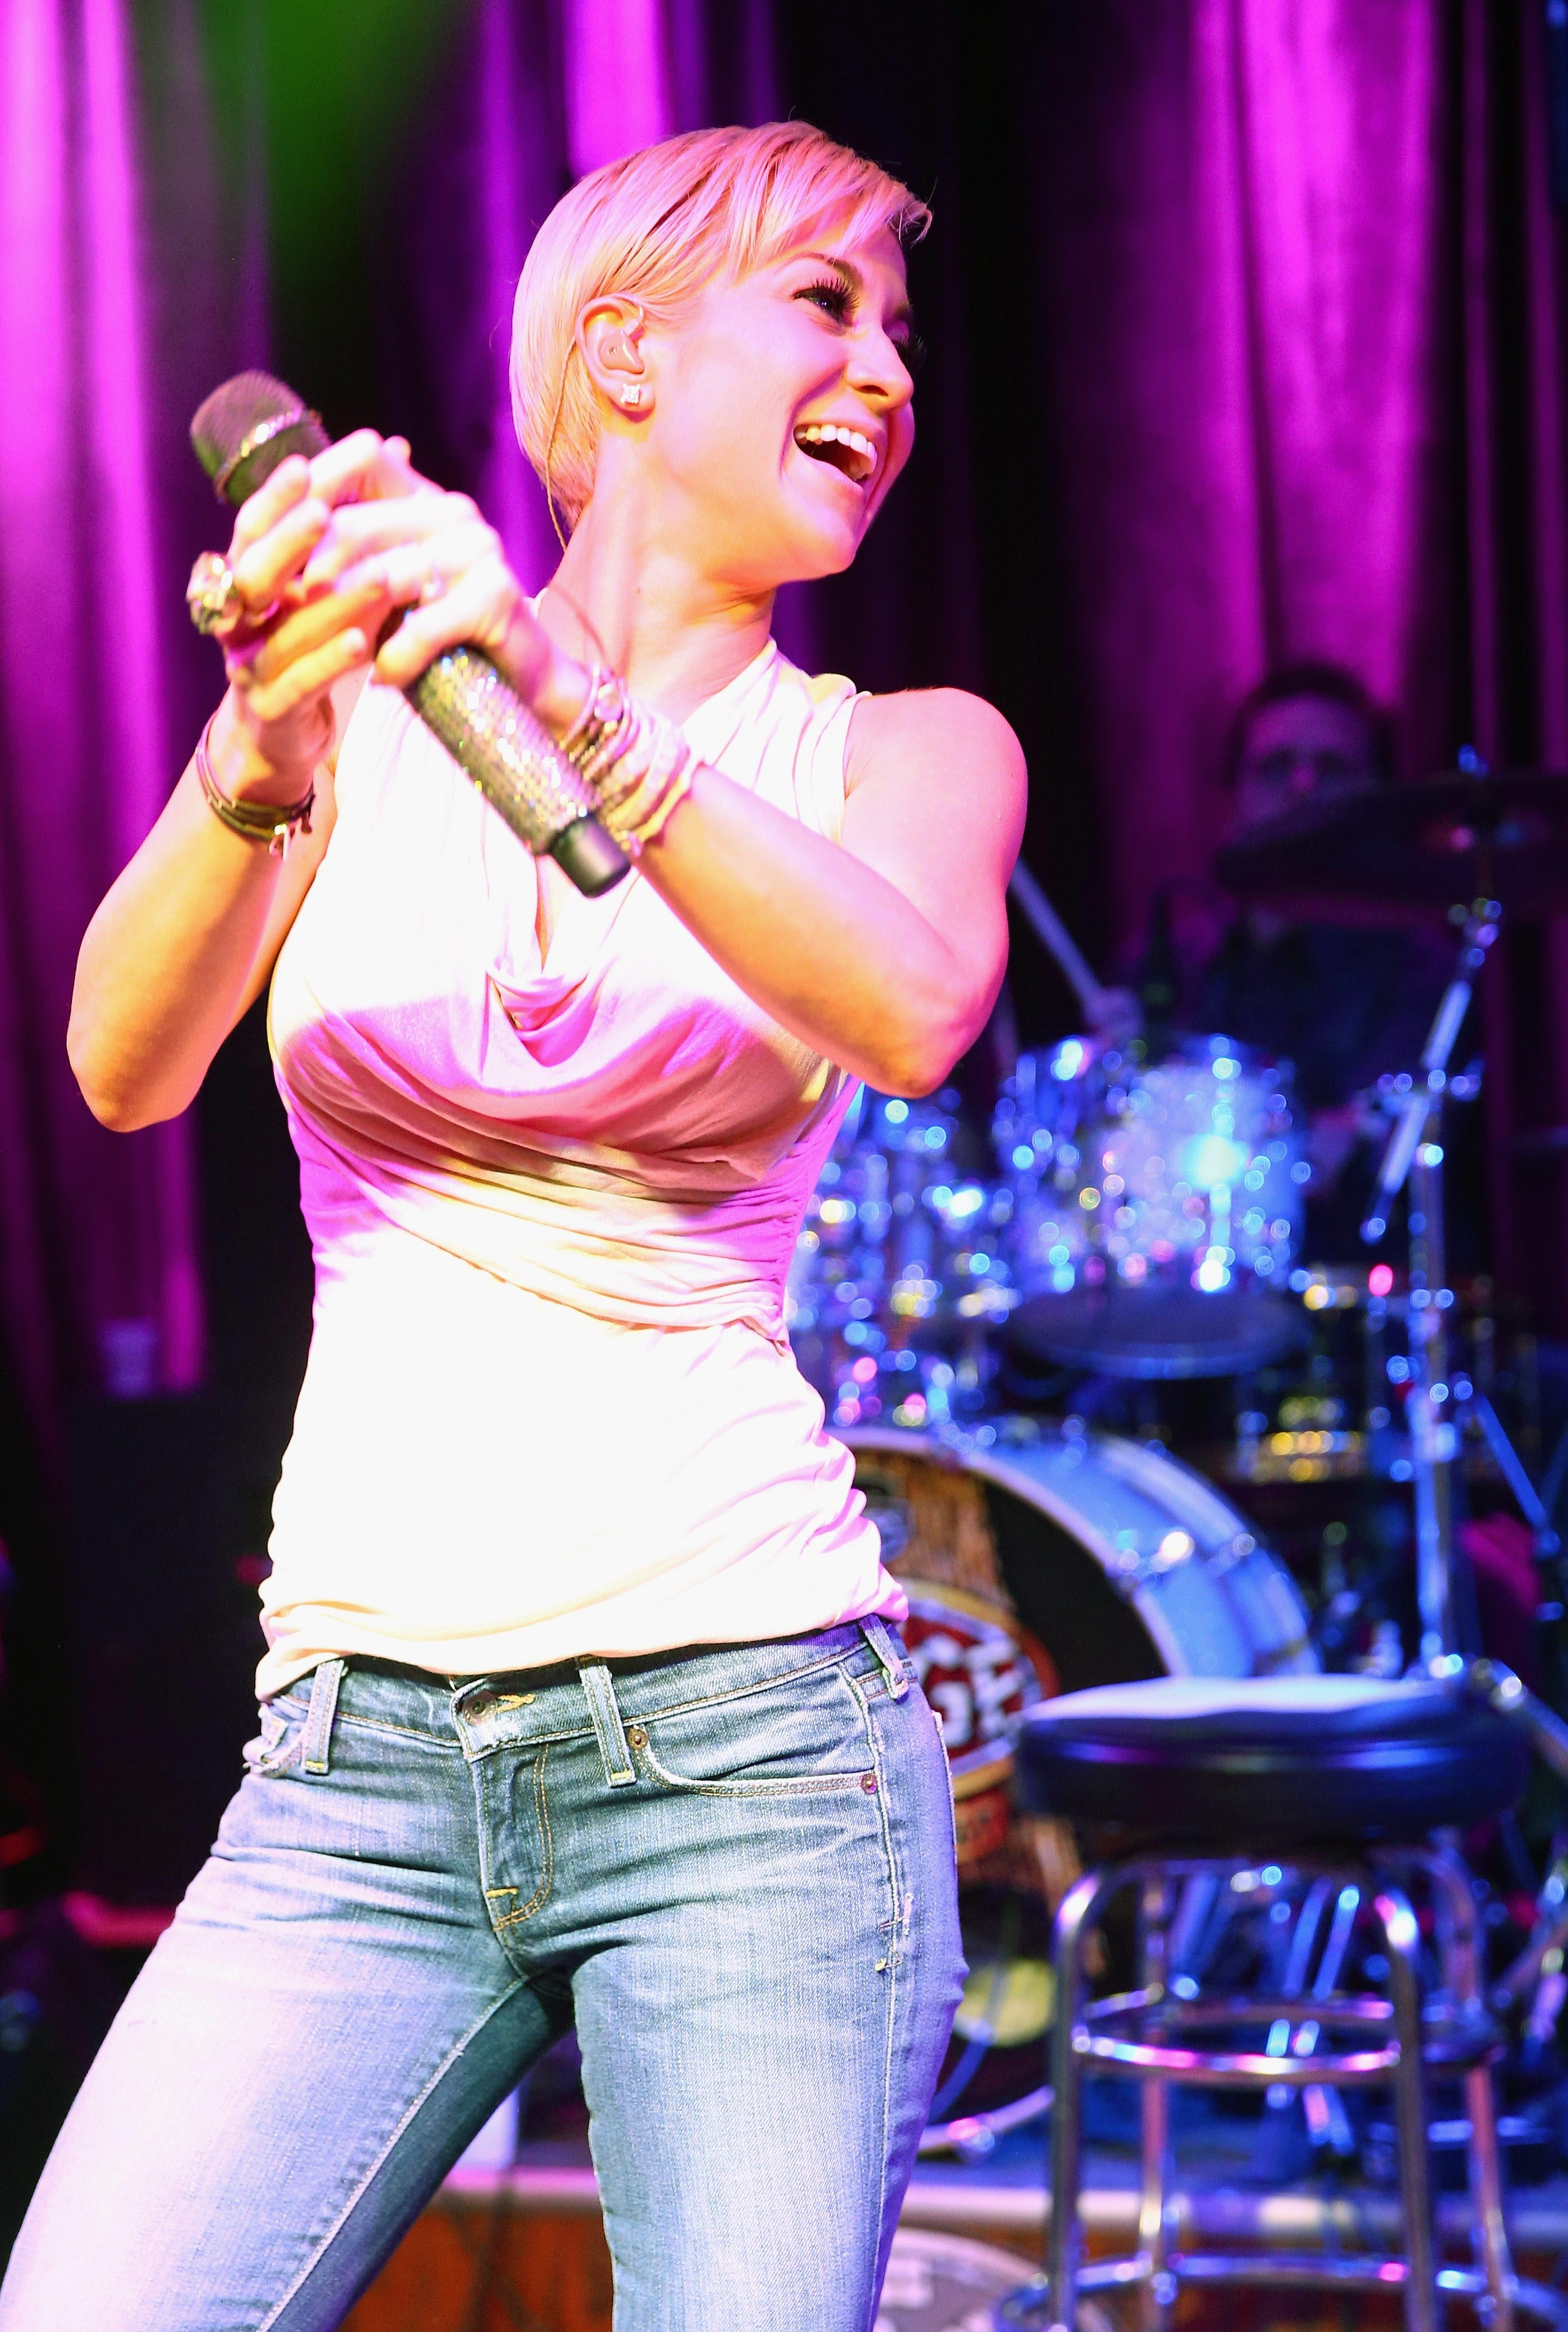 NASHVILLE, TN – JUNE 07:  Singer Kellie Pickler performs at The Stage on June 7, 2013 in Nashville, Tennessee.  (Photo by Christopher Polk/Getty Images)